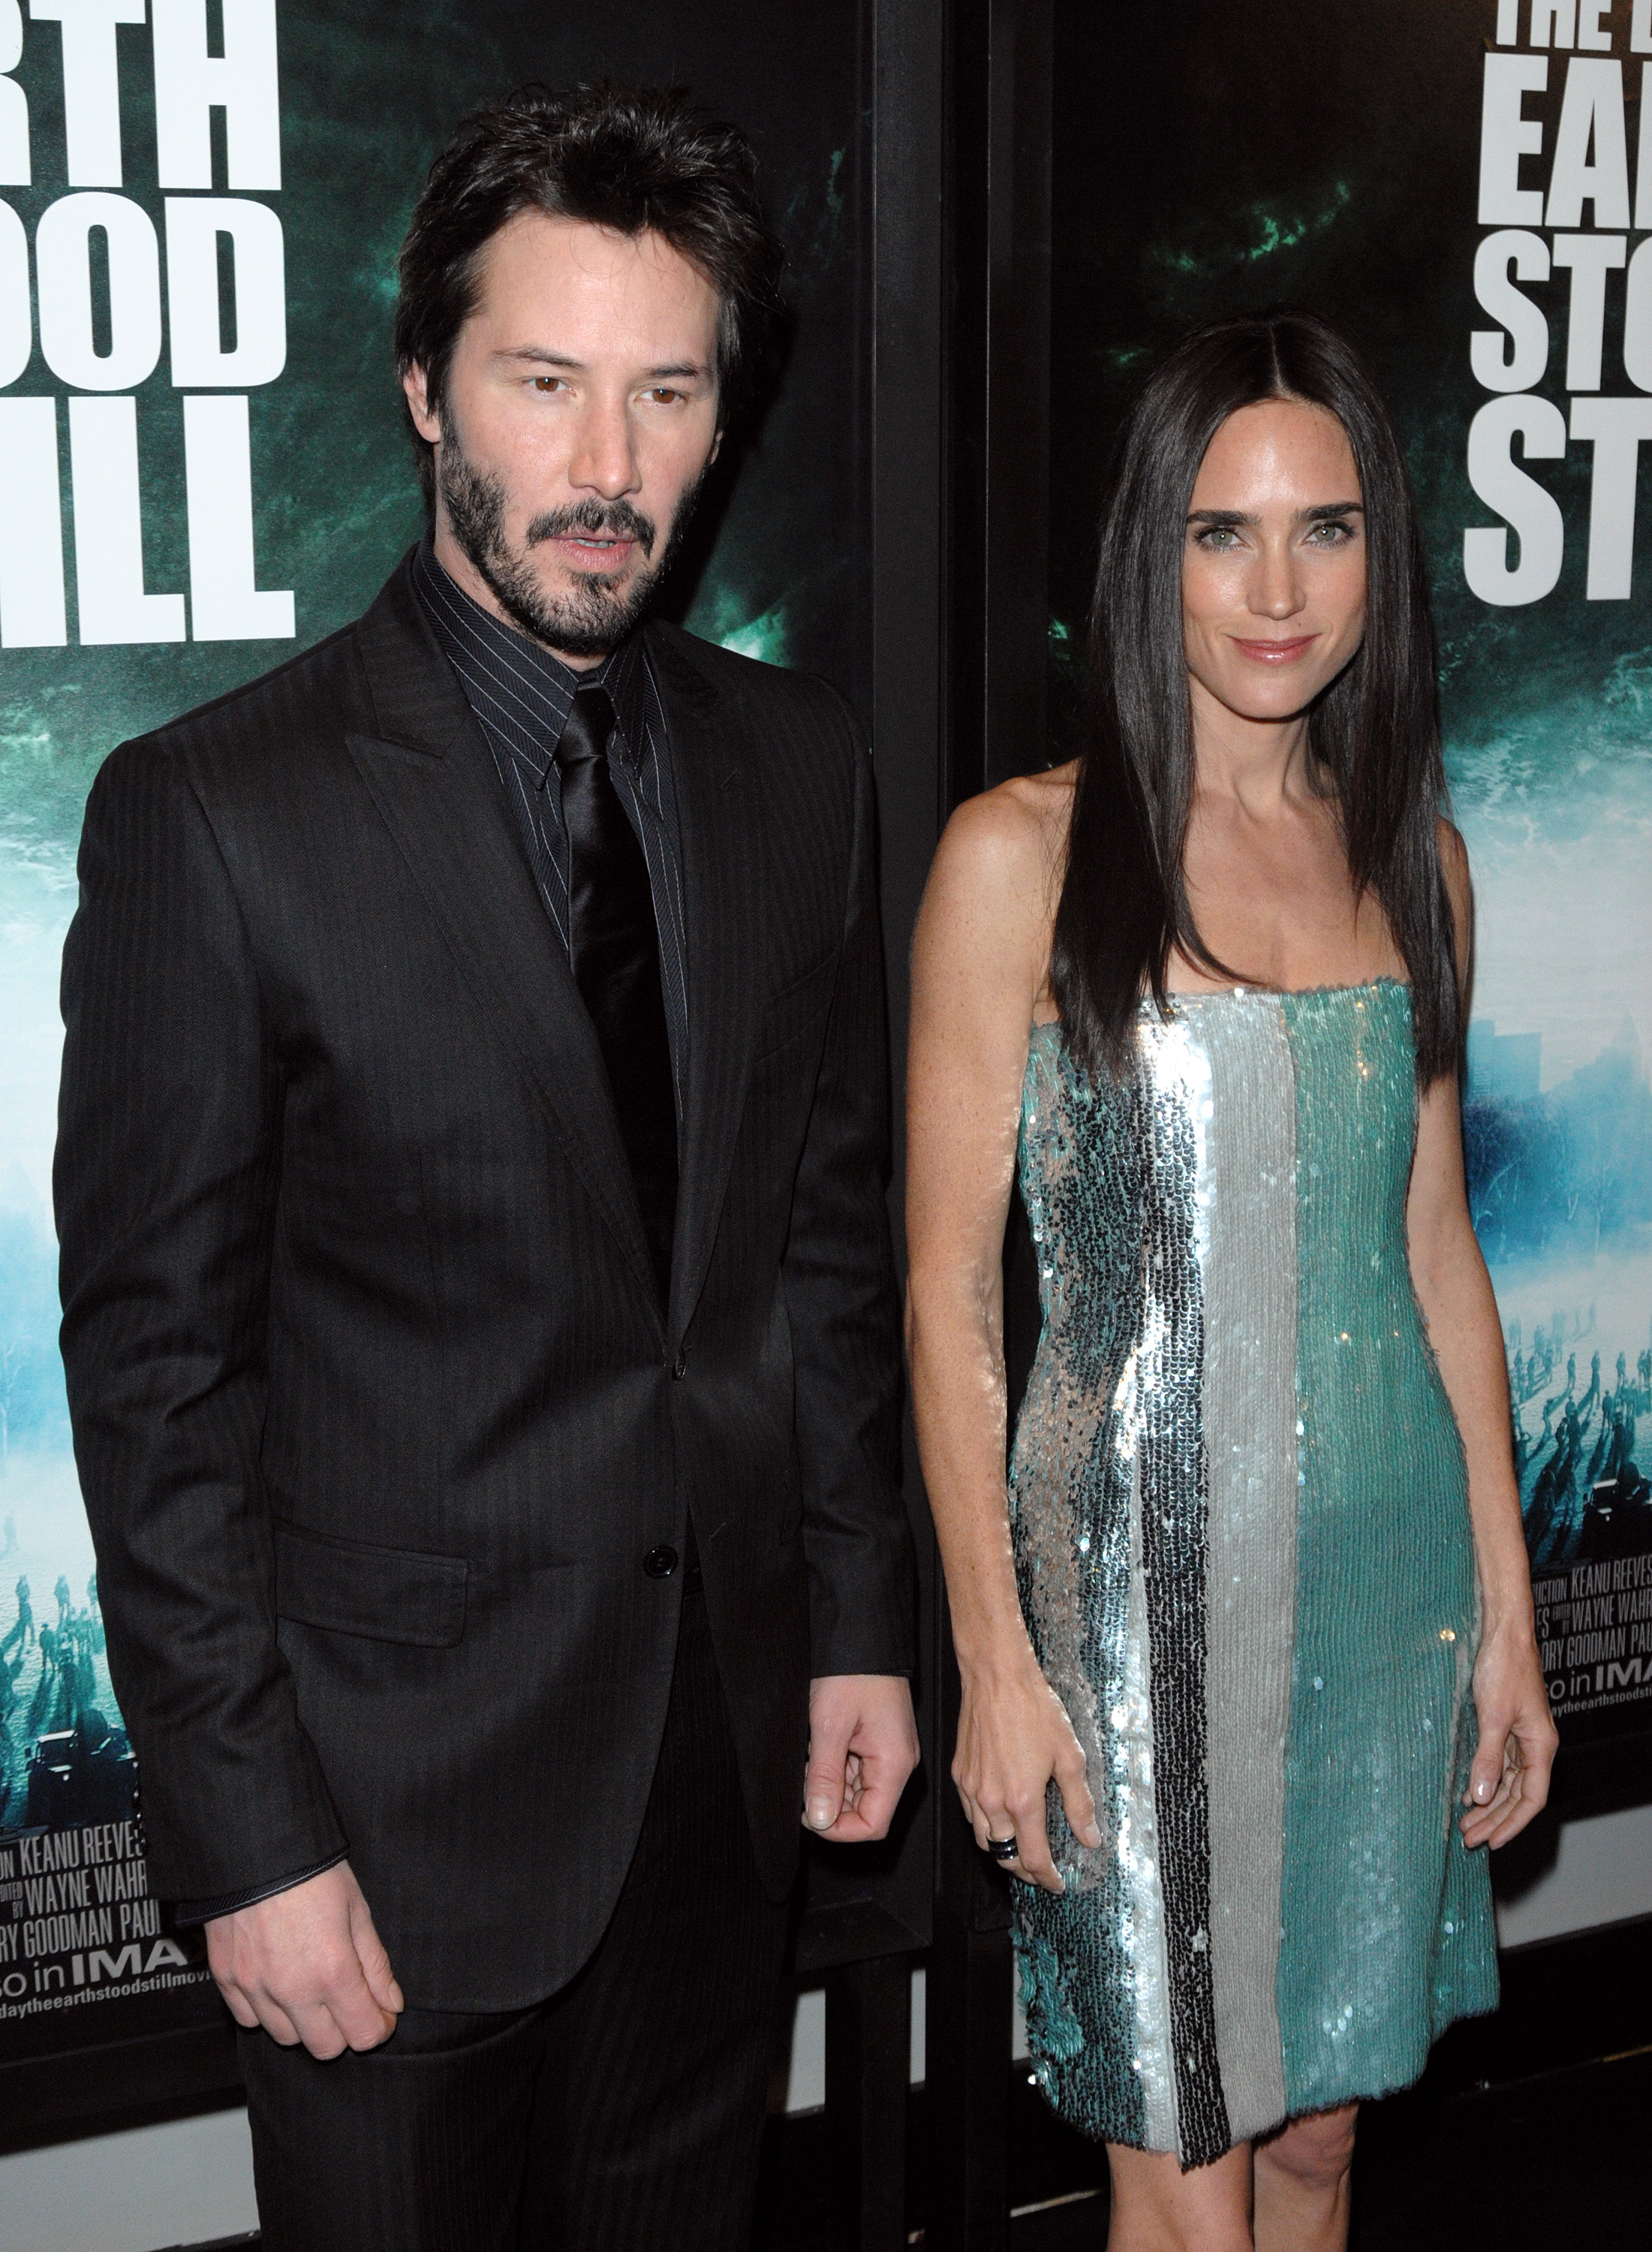 73090_Celebutopia-Jennifer_Connelly-The_Day_The_Earth_Stood_Still_premiere_in_New_York_City-04_122_358lo.JPG